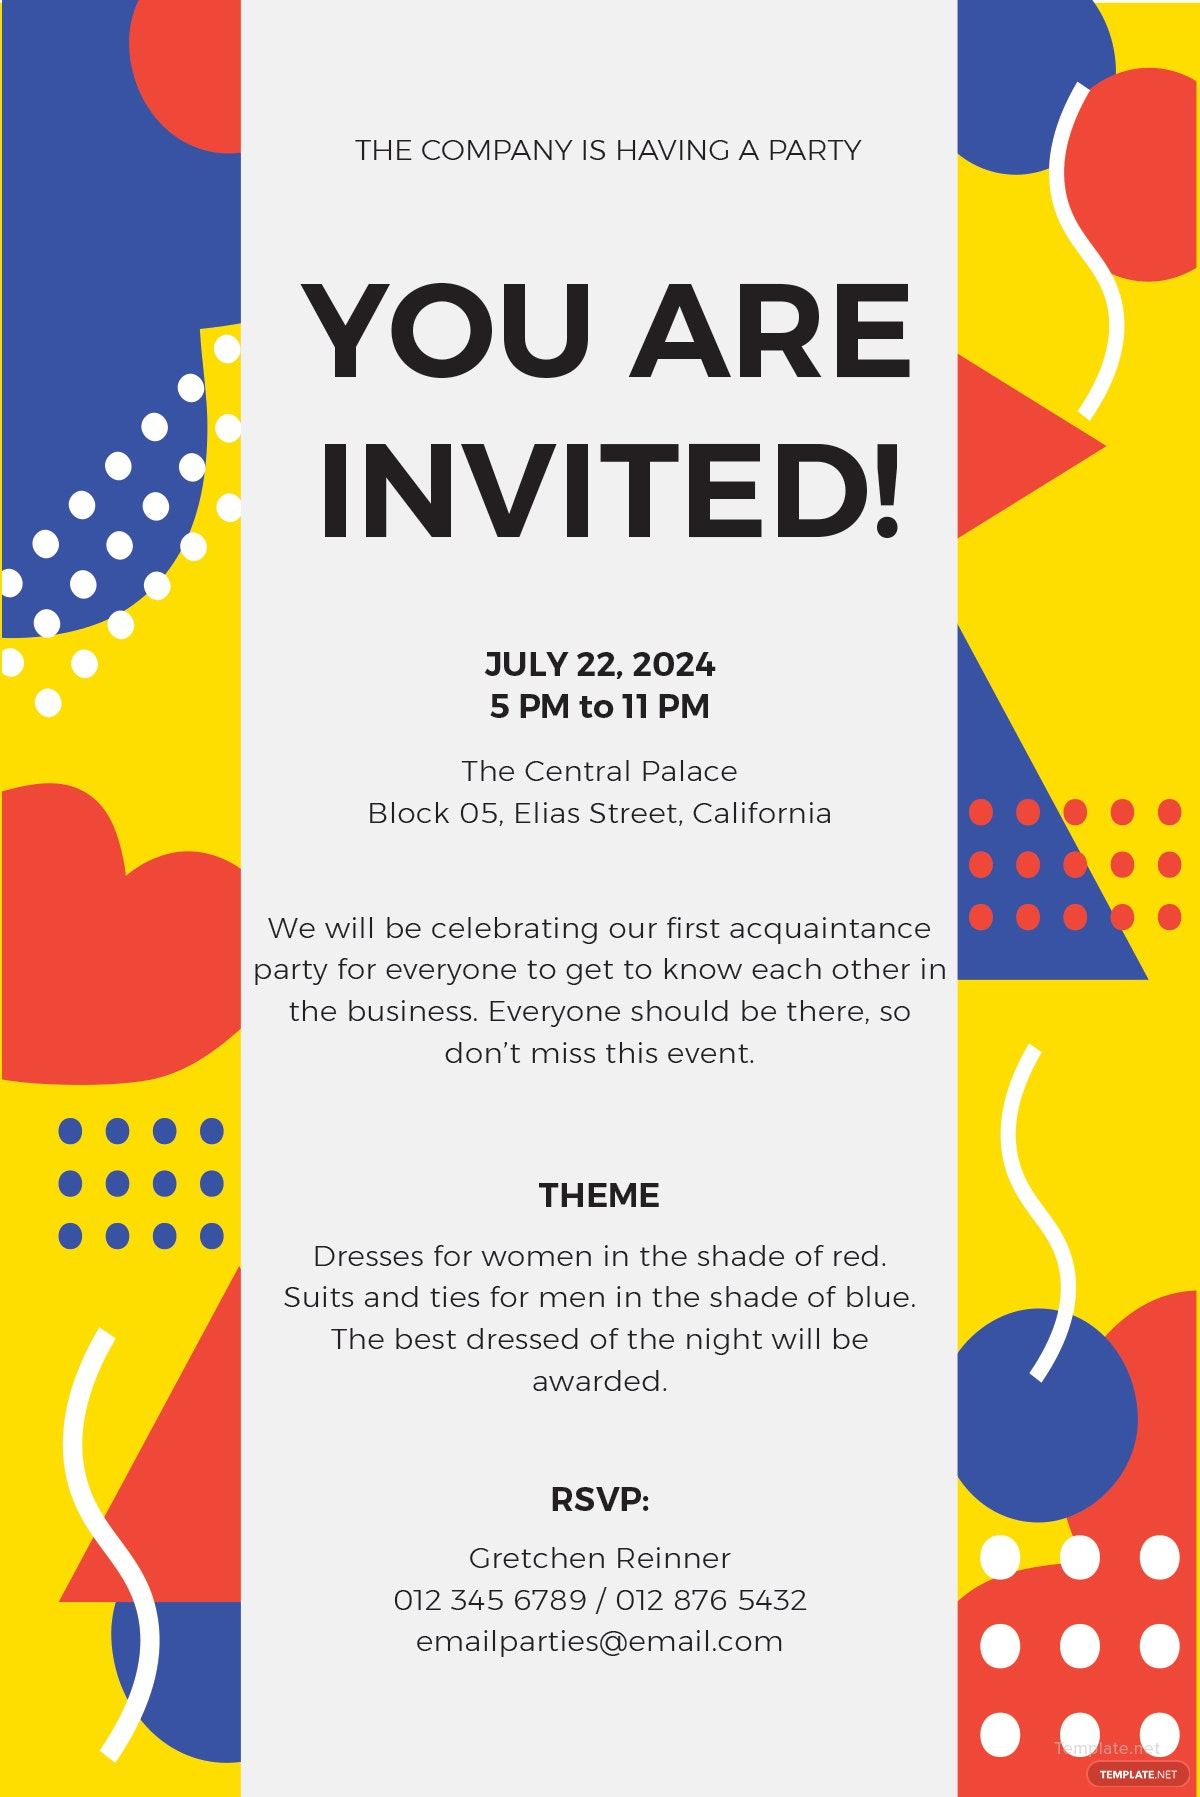 free email party invitation template in ms word  publisher